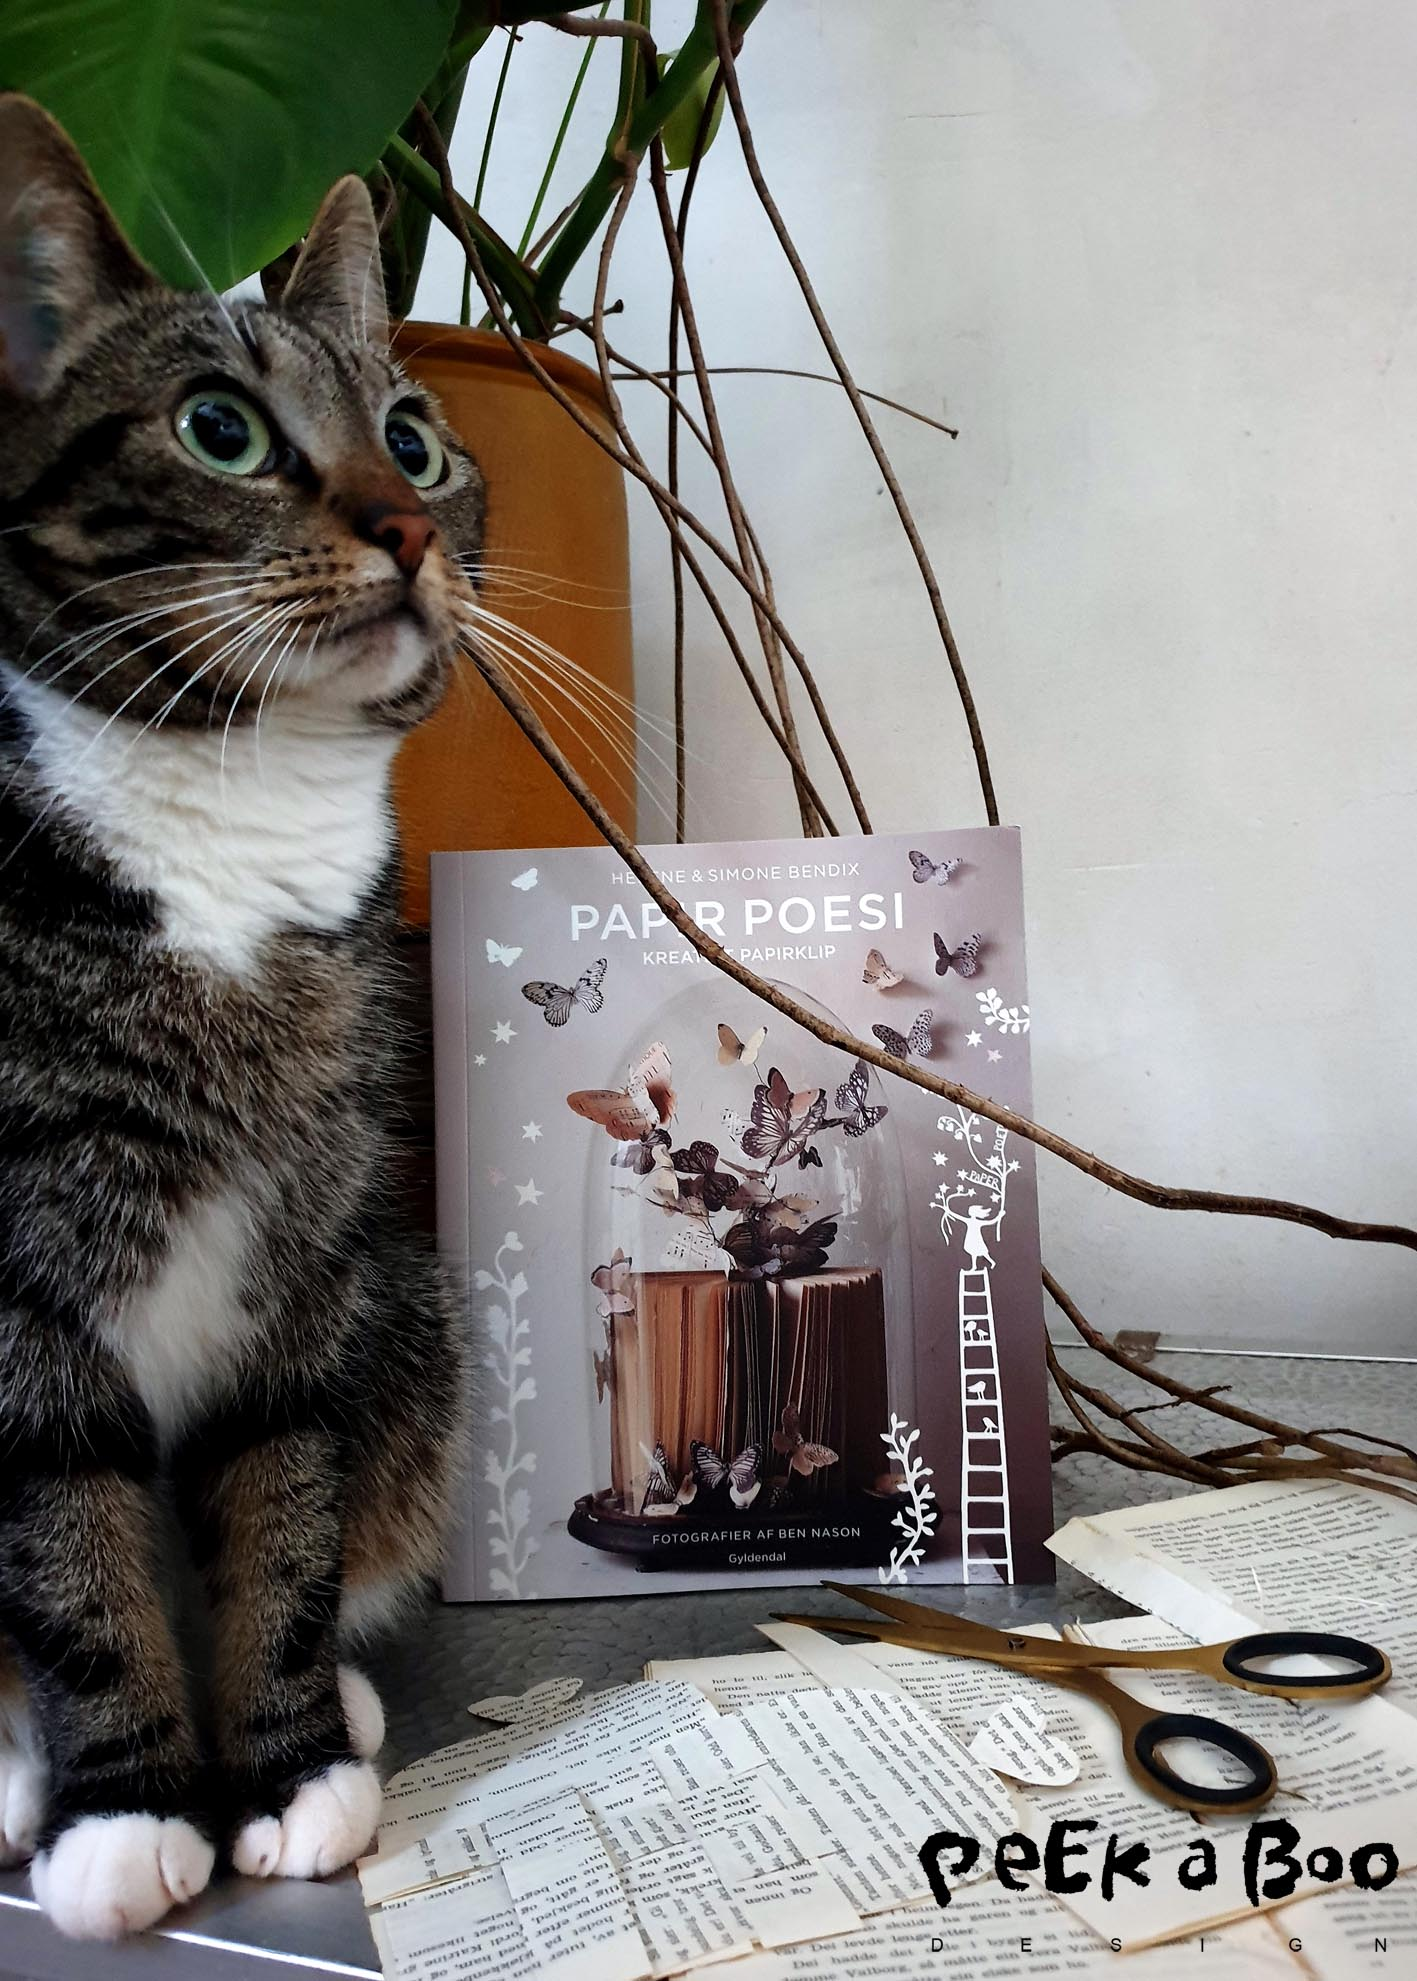 the cat that loves modelling....and the new creative books that you should add to your wishlist.